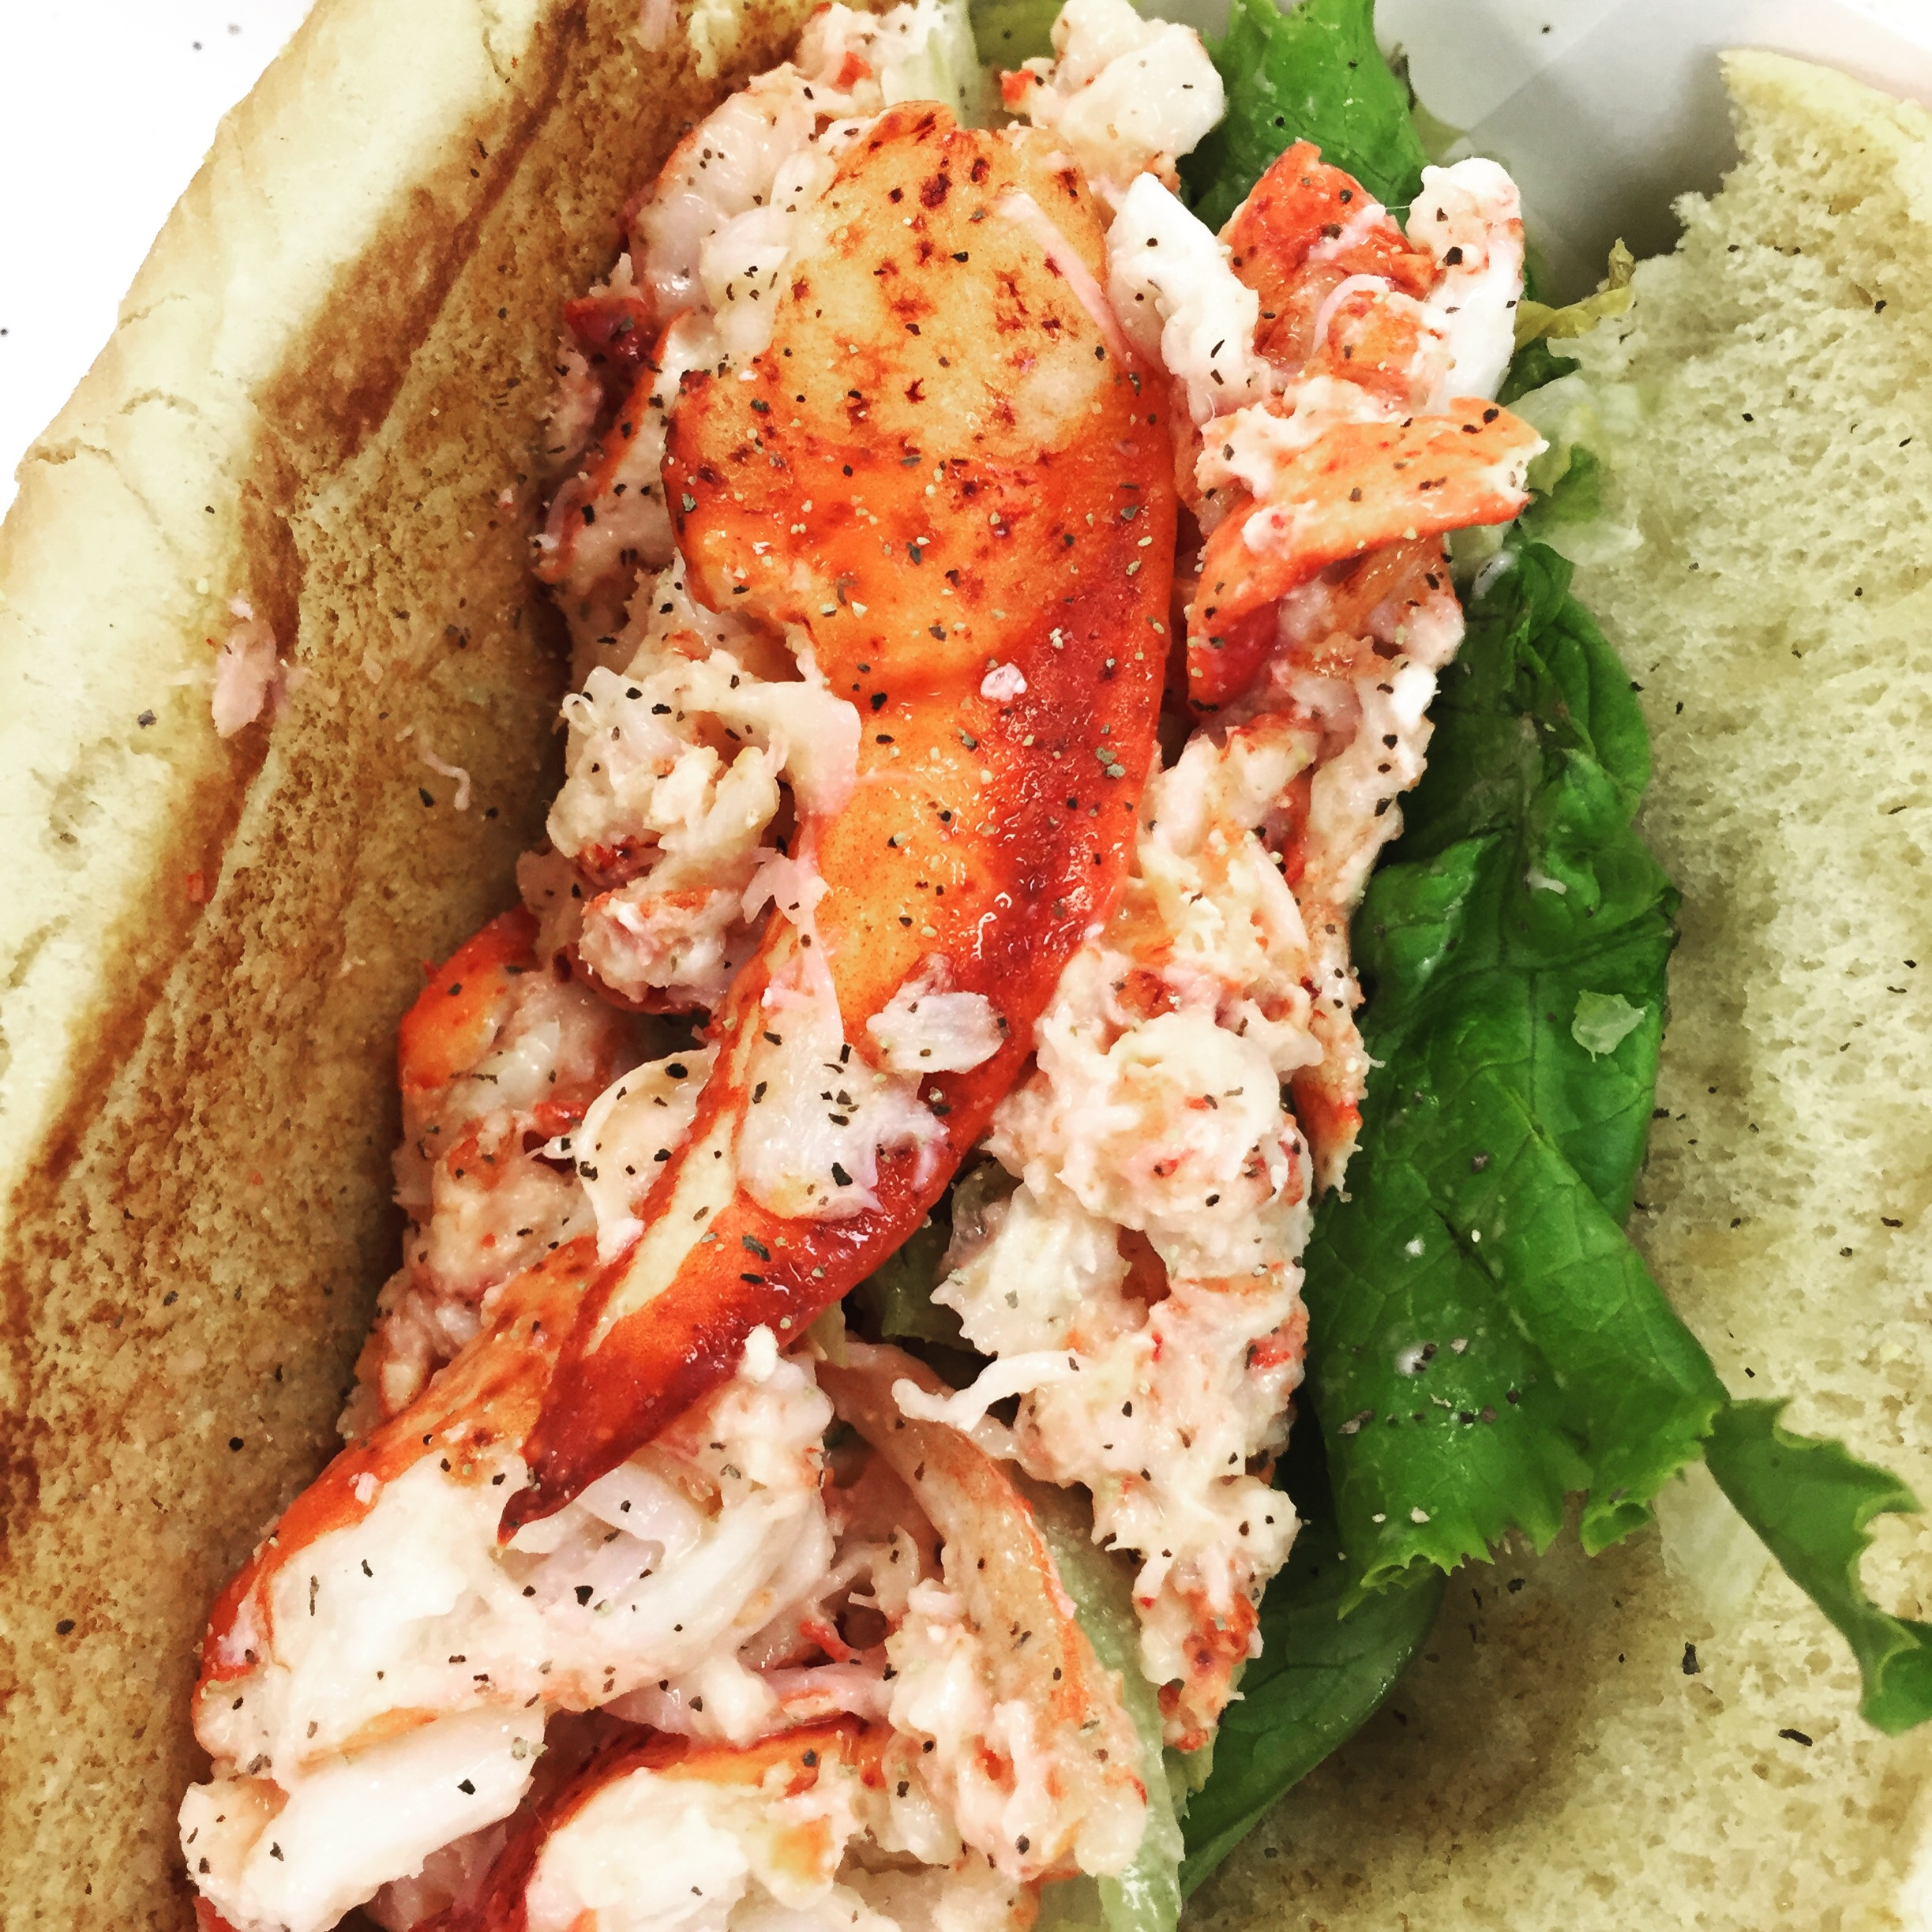 The McDonald's Lobster Roll. Image Jessica Gordon Ryan (taken with an iPhone6)